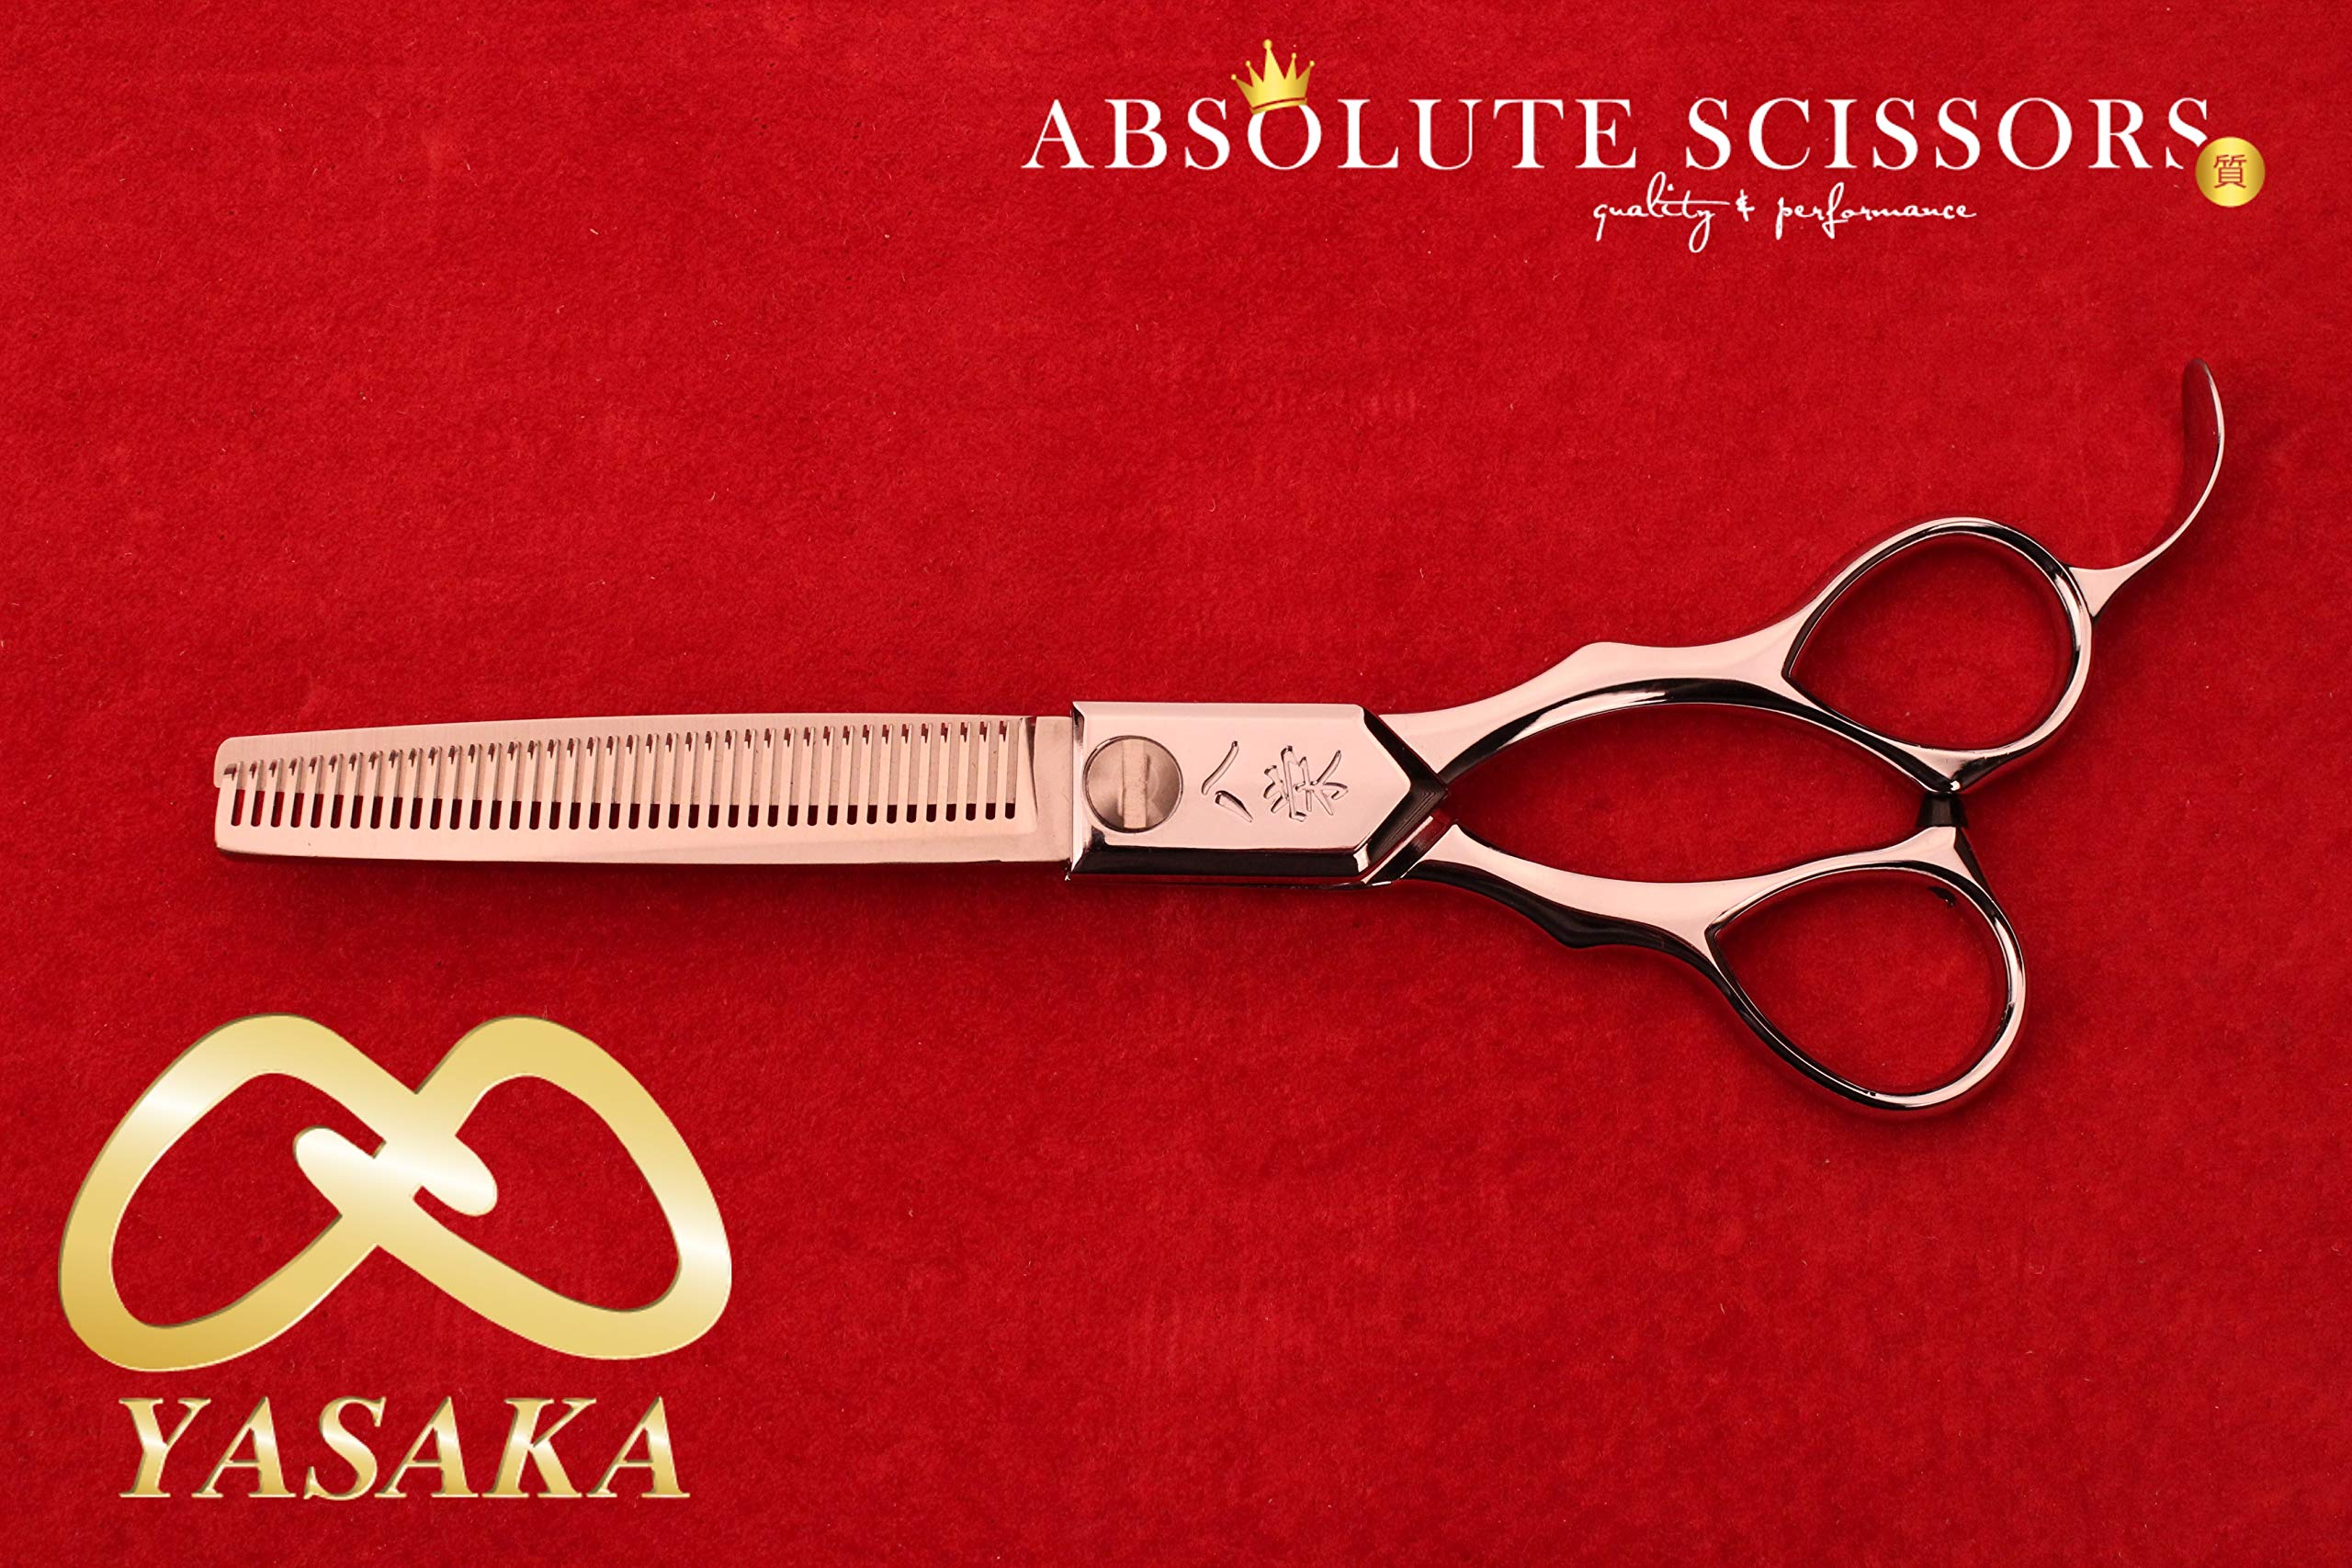 Yasaka YS400 HAIR Thinning scissors/shears 55% CUT AWAY COBALT ATS314